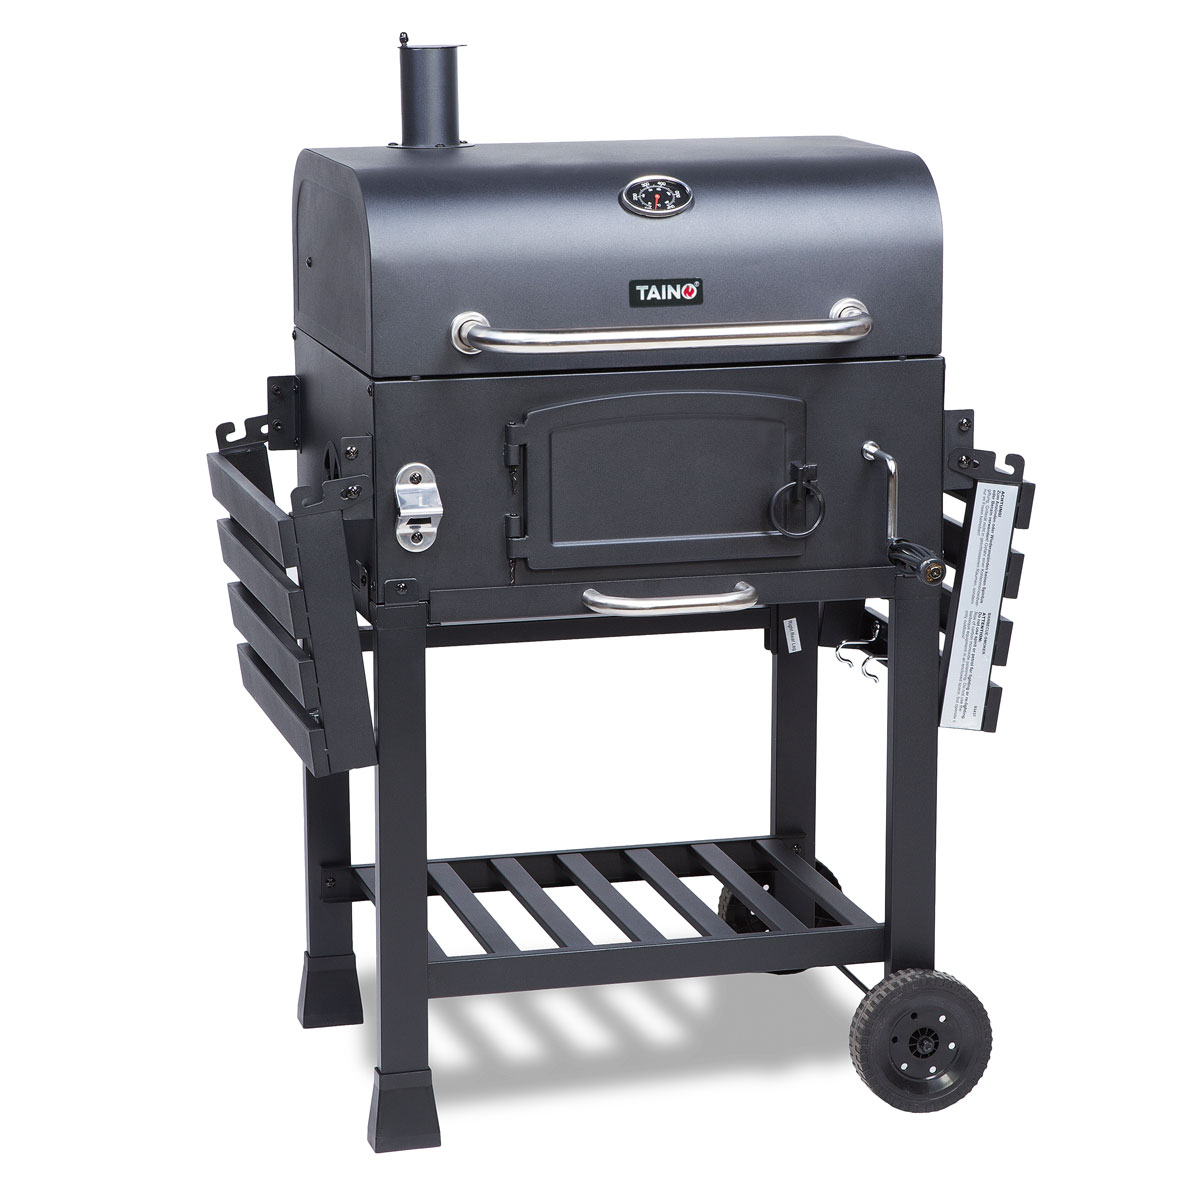 taino hero xl smoker bbq grillwagen holzkohle abdeckung standgrill grill kohle ebay. Black Bedroom Furniture Sets. Home Design Ideas